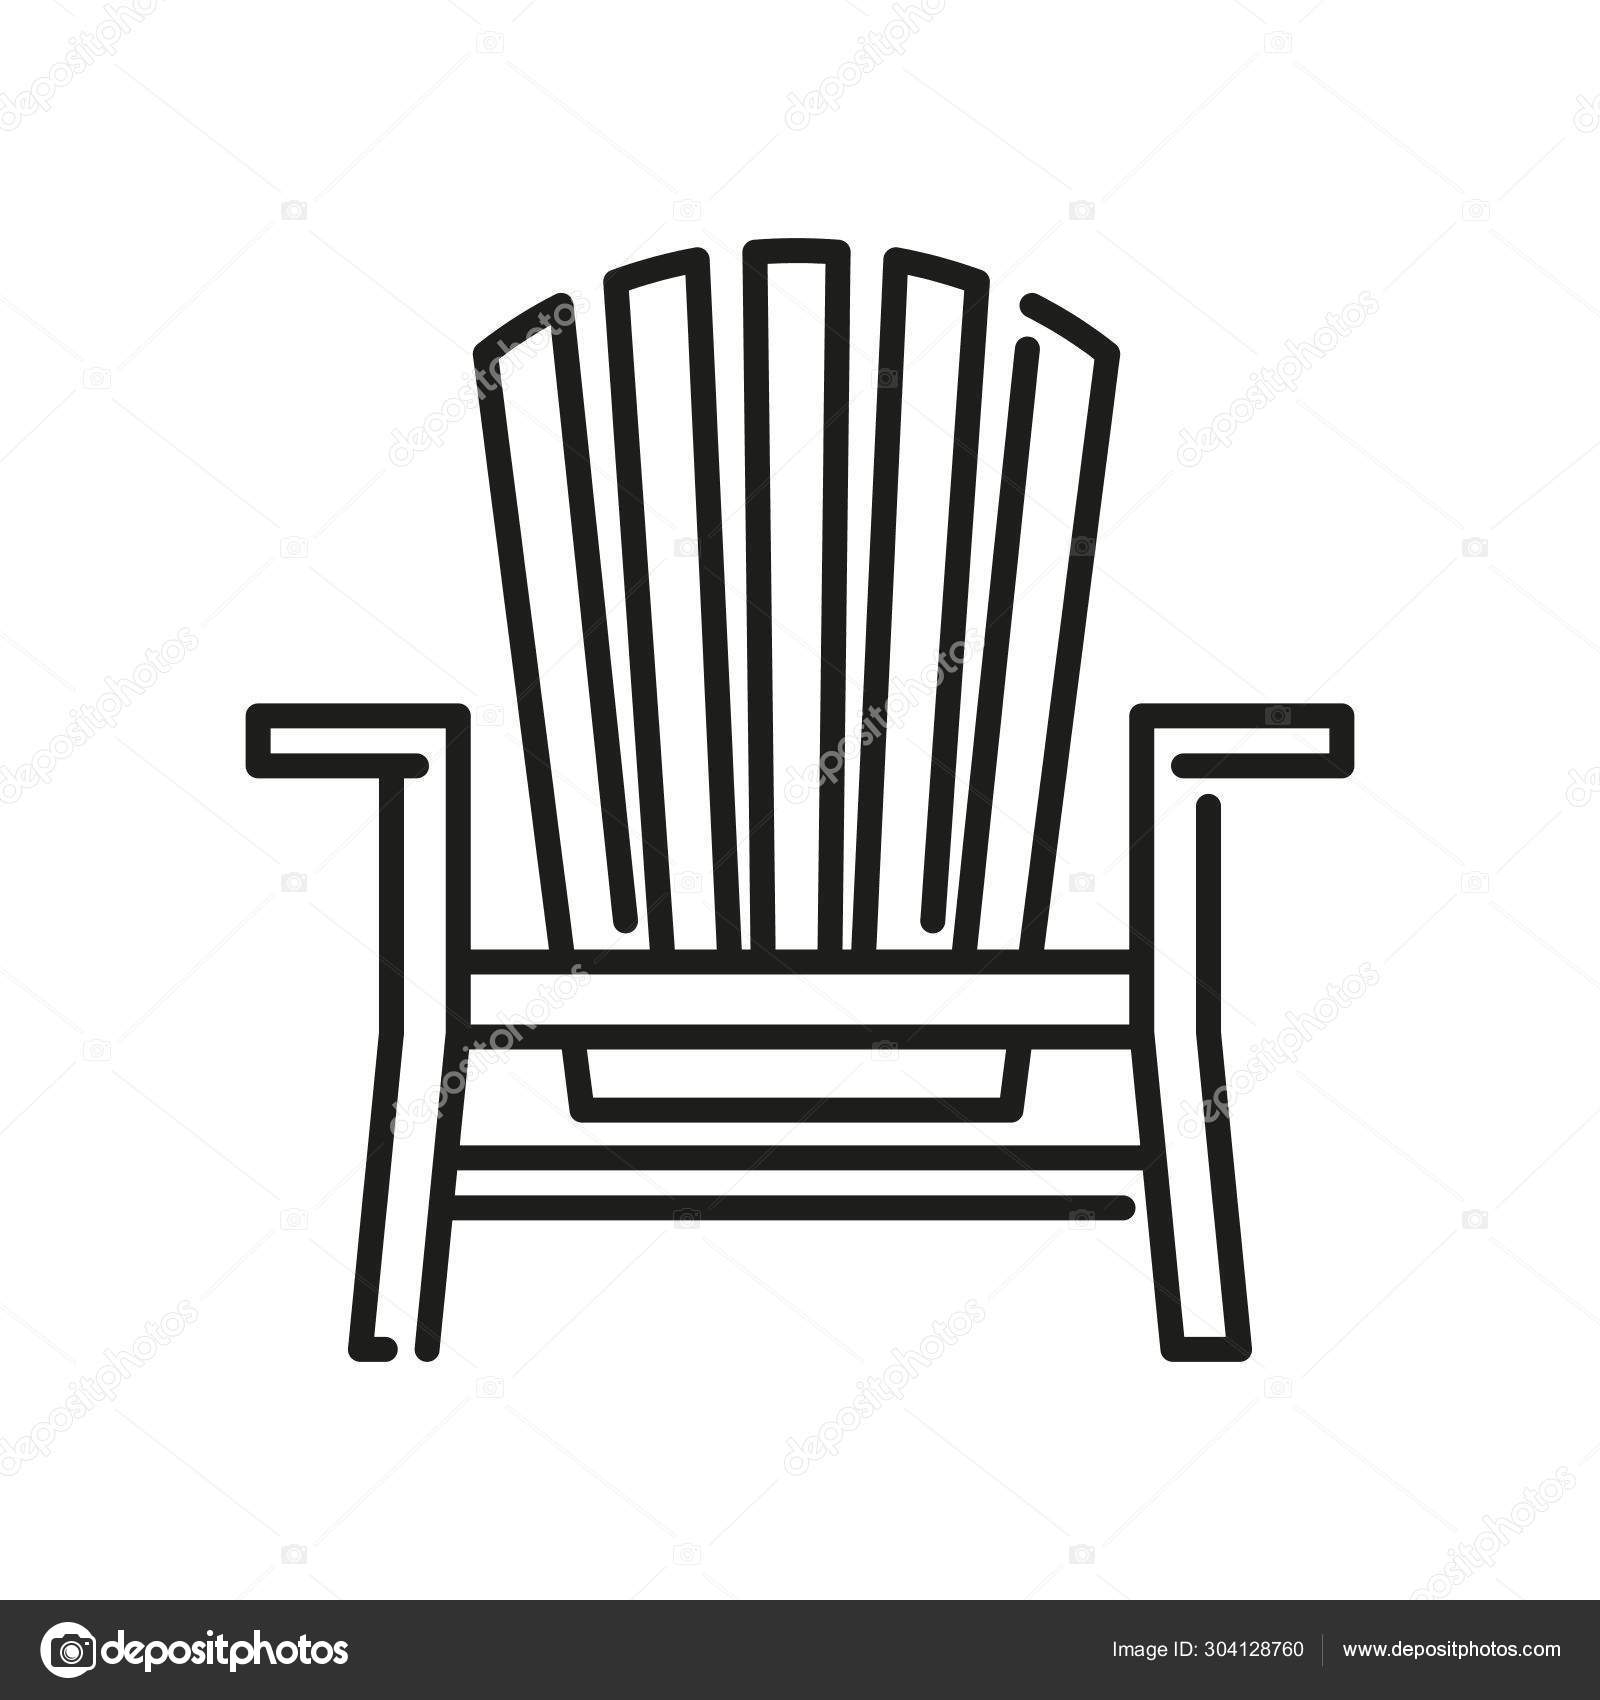 ᐈ Muskoka chair silhouette stock vectors, Royalty Free ...